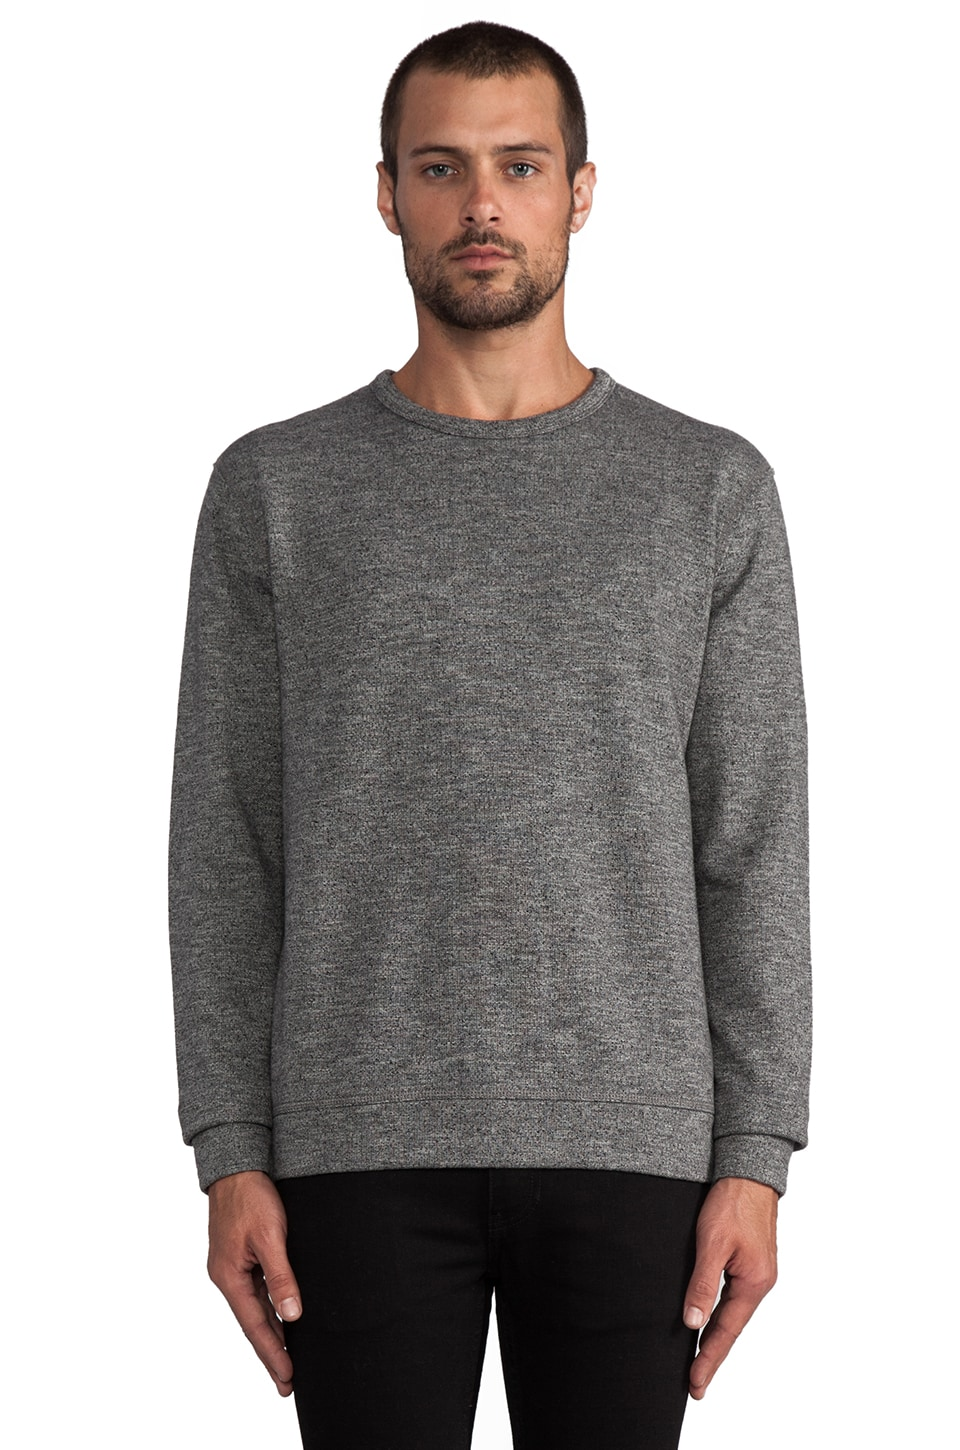 T by Alexander Wang Top Dyed Fleece Crewneck in Charcoal